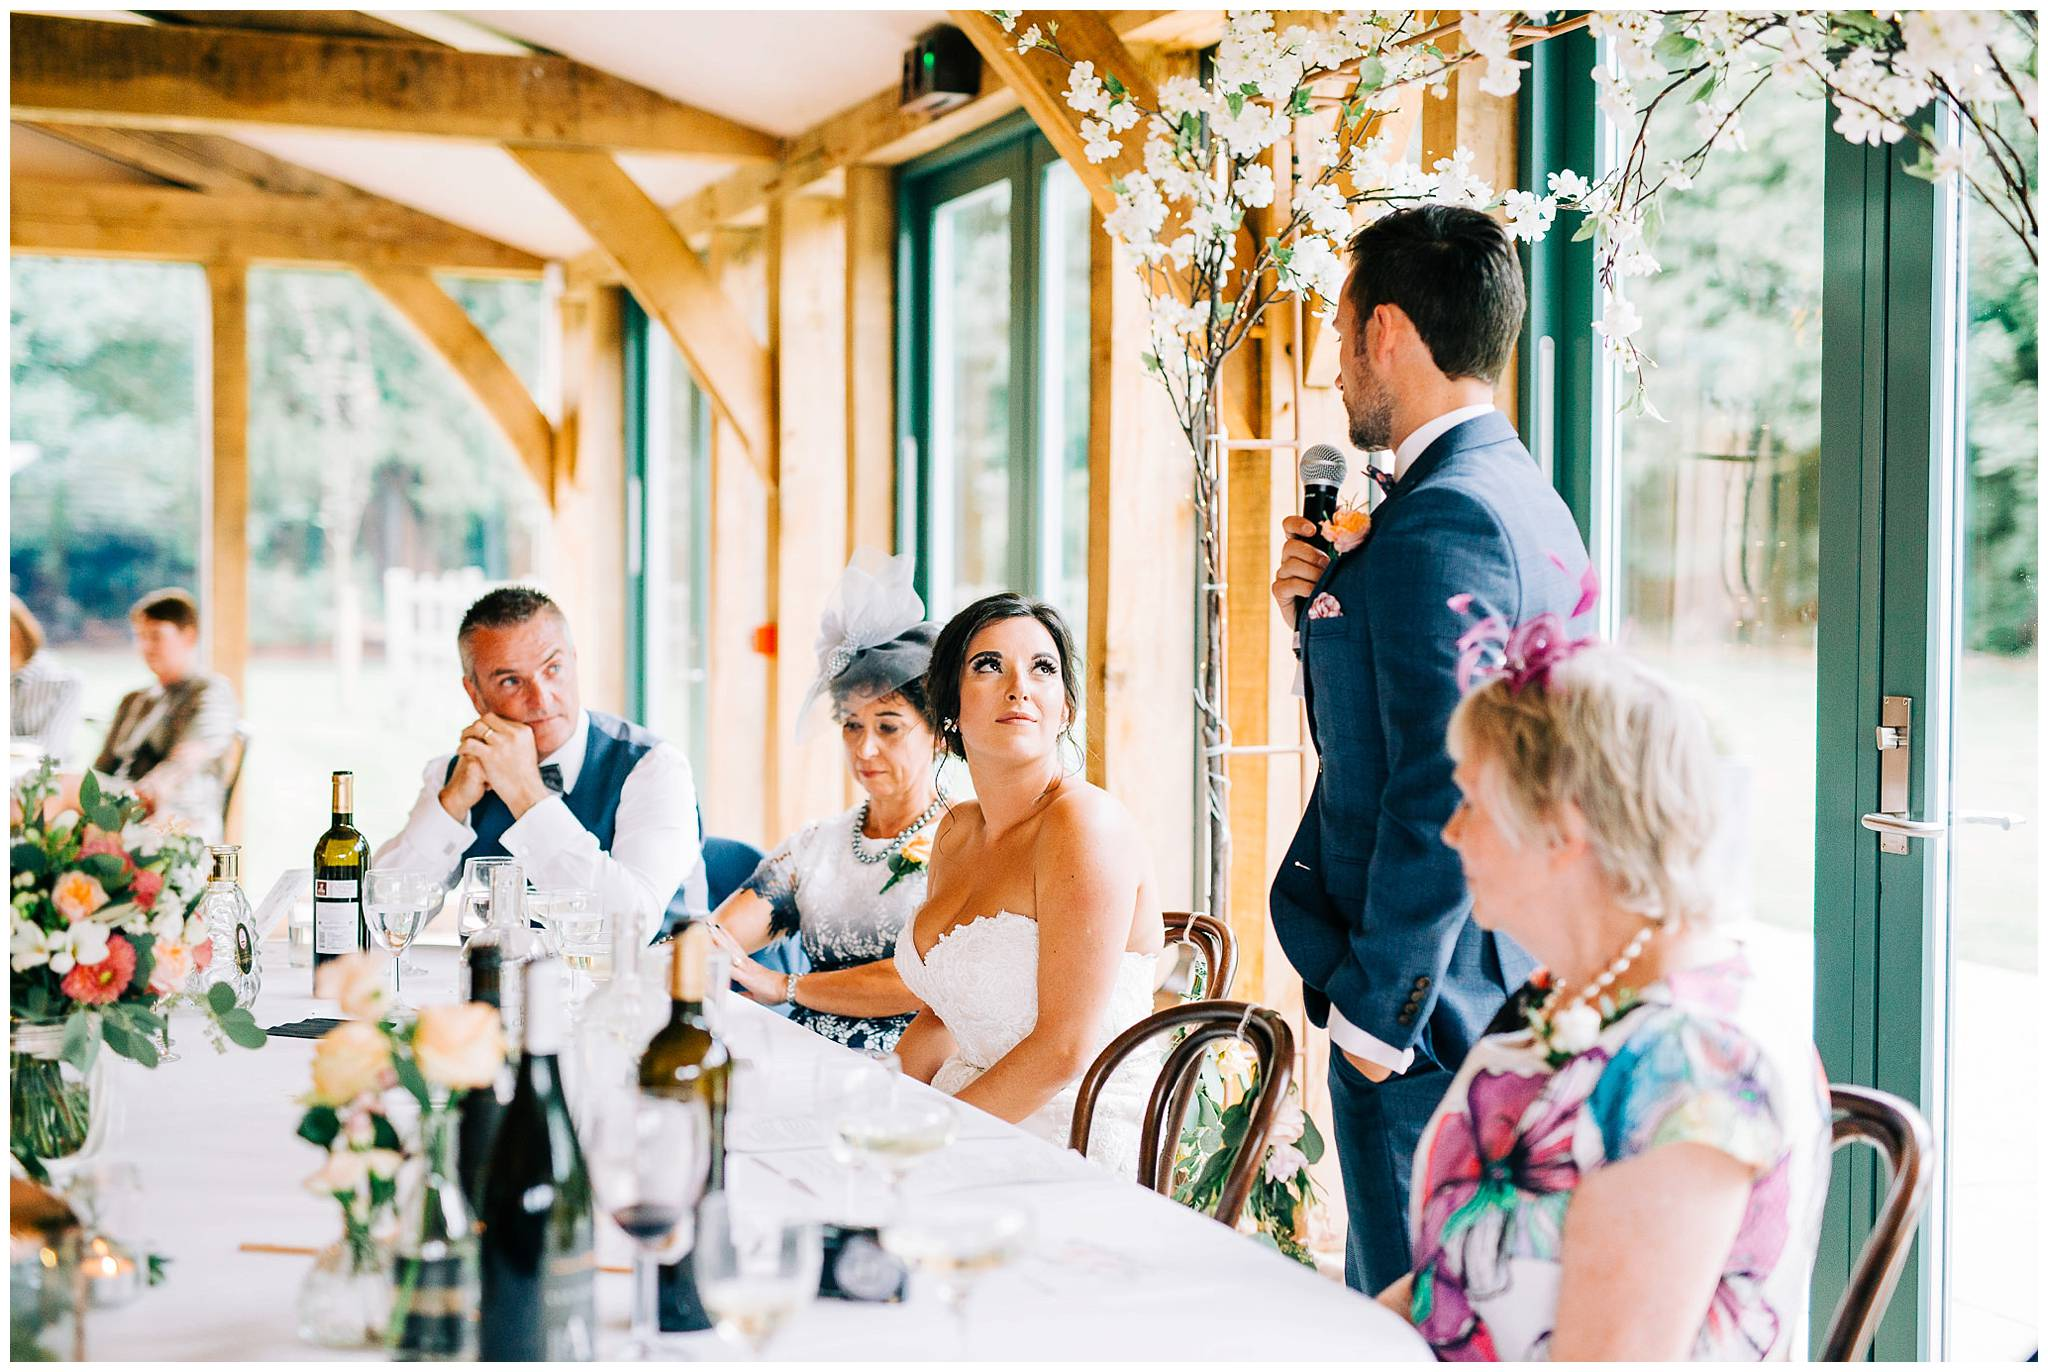 Chic Summer Wedding at Hazel Gap Barn - Nottinghamshire Photographer62.jpg